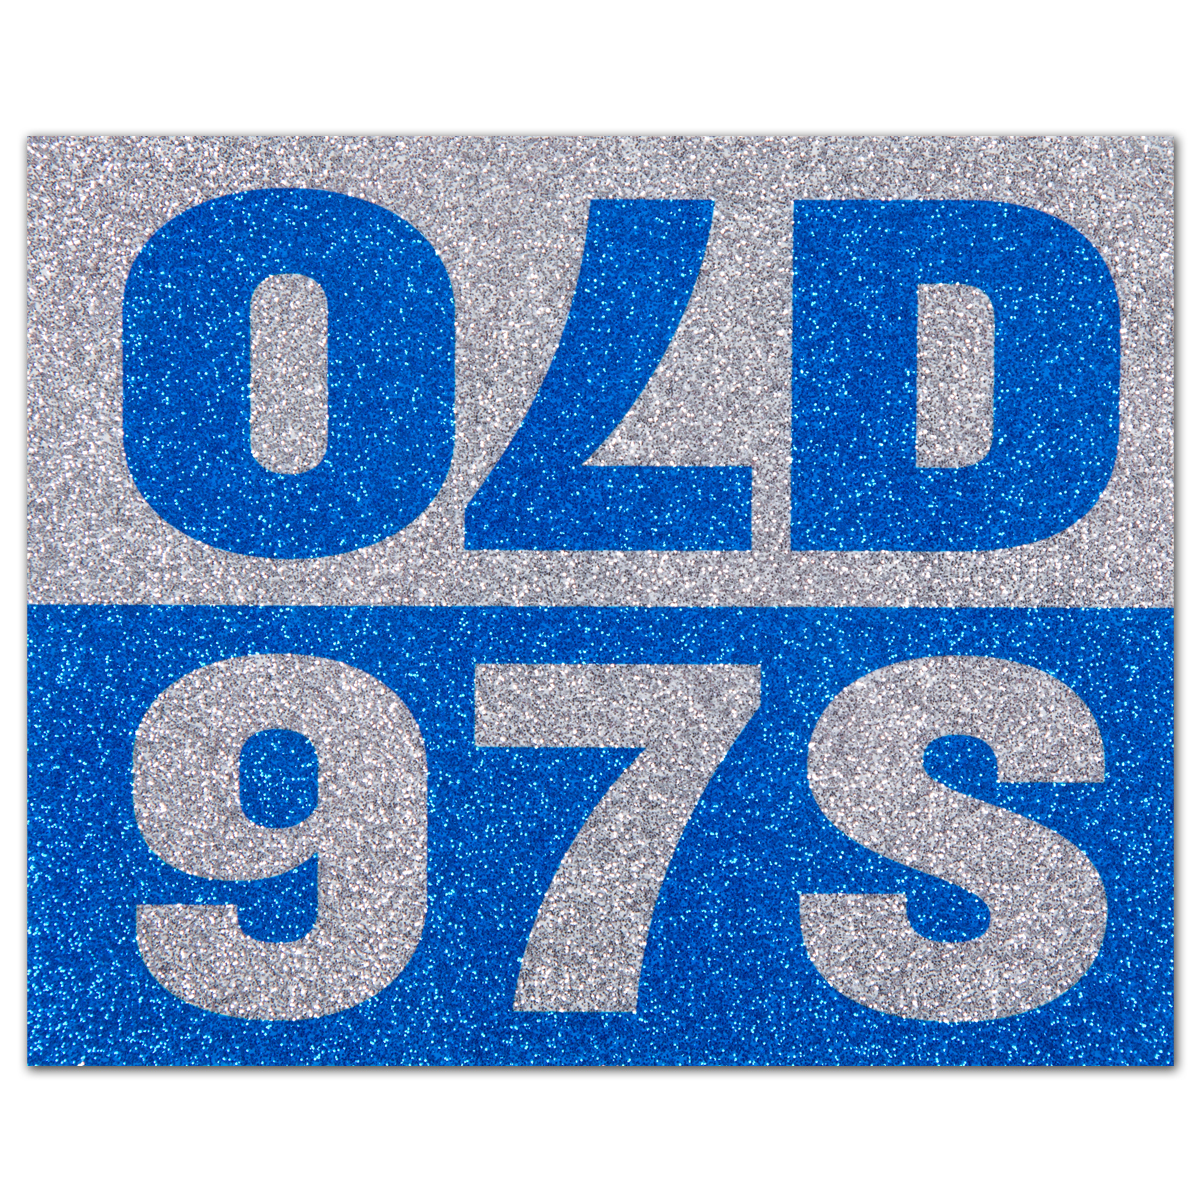 Old 97s Sparkle Sticker -- Small